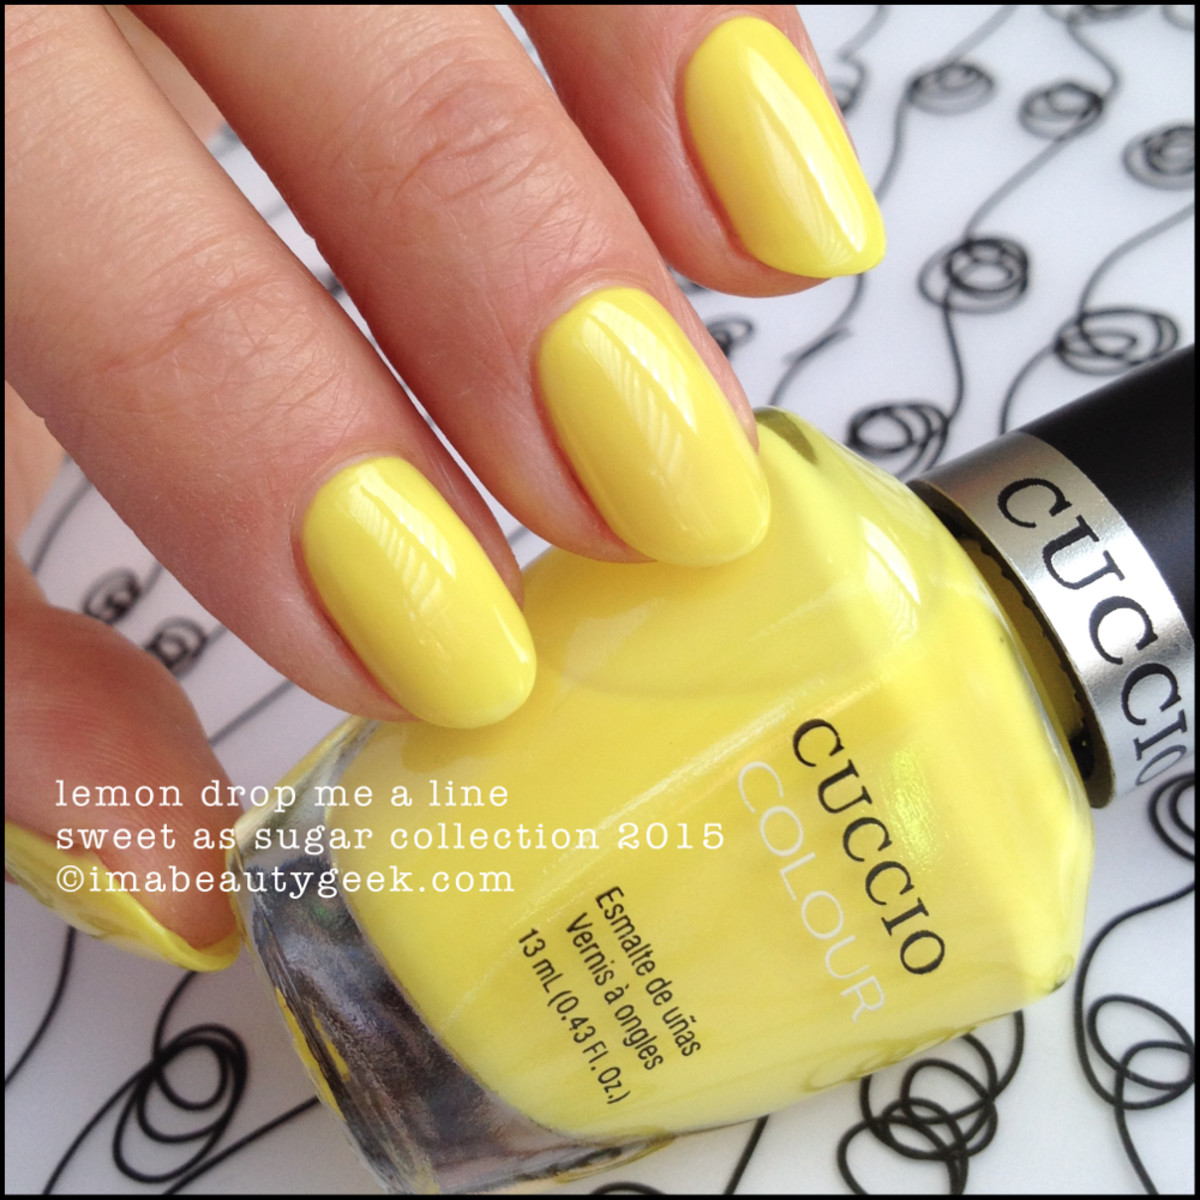 Cuccio Colour Nail Polish Lemon Drop Me a Line Sweet as Sugar 2015